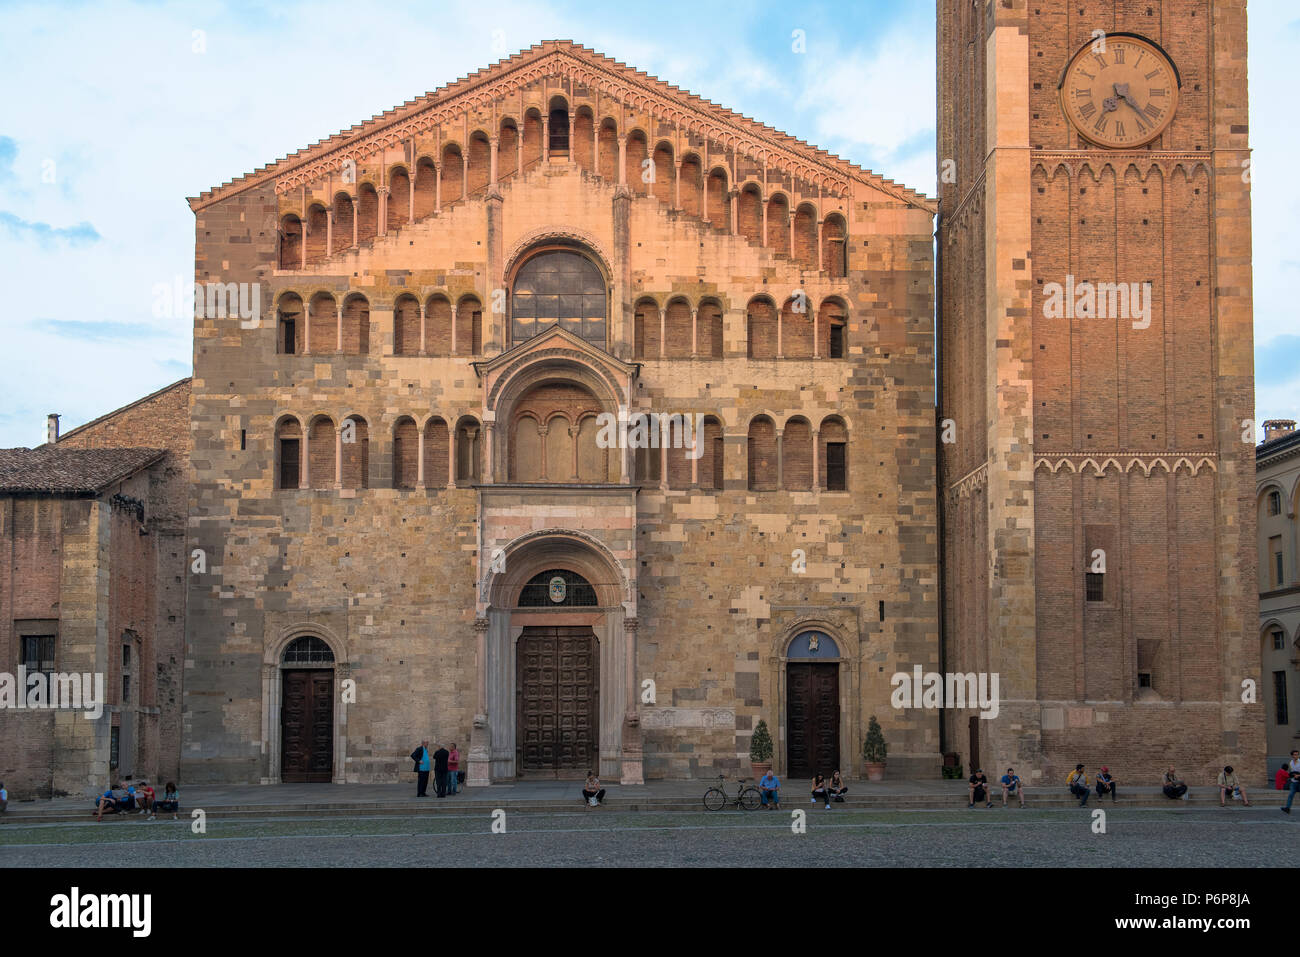 Parma Duomo (cathedral), Italy. - Stock Image